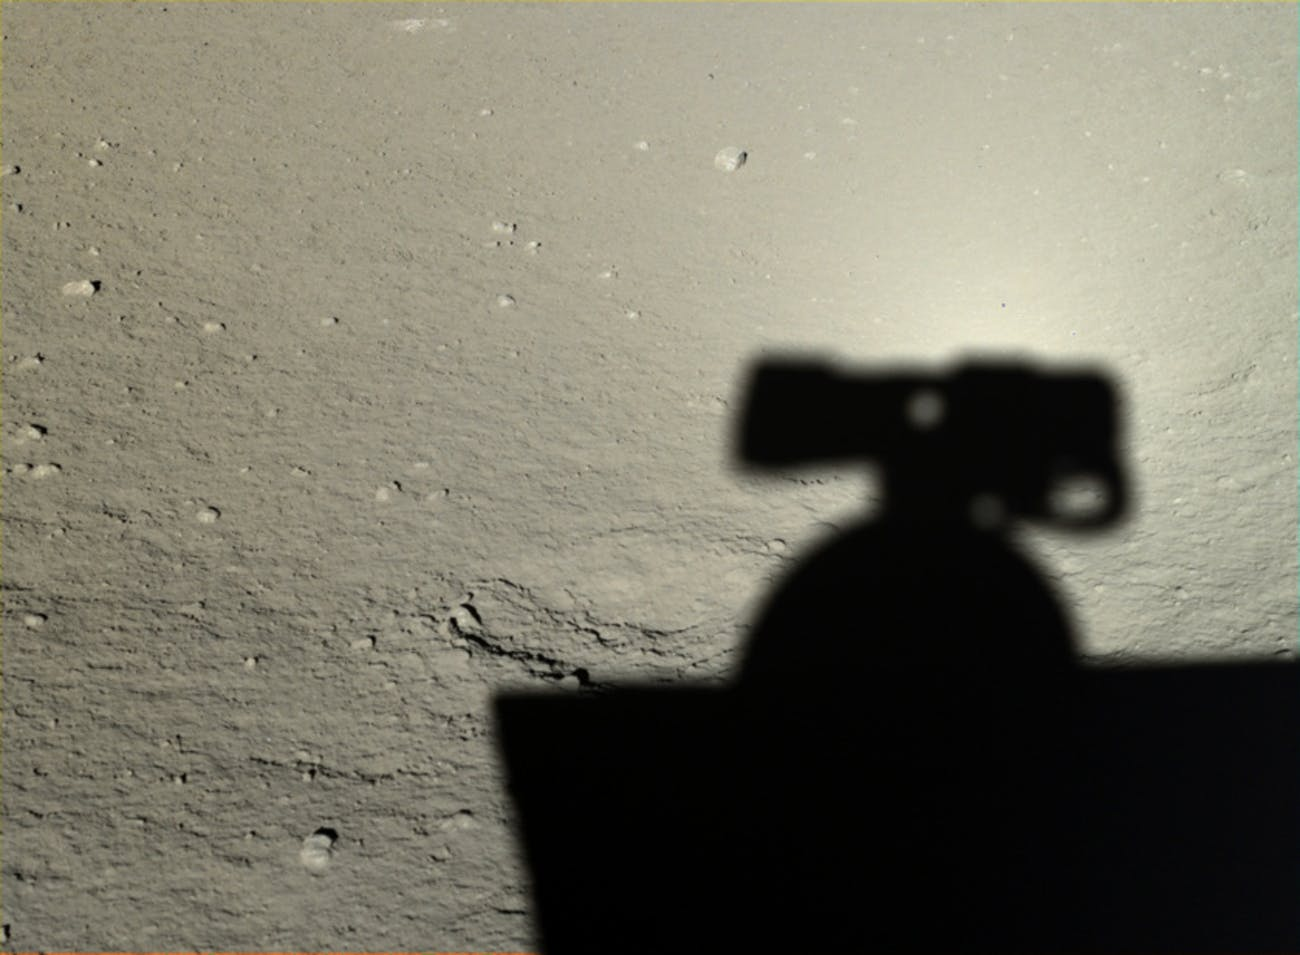 Yutu took a photo of its shadow on the moon on January 12, 2014.